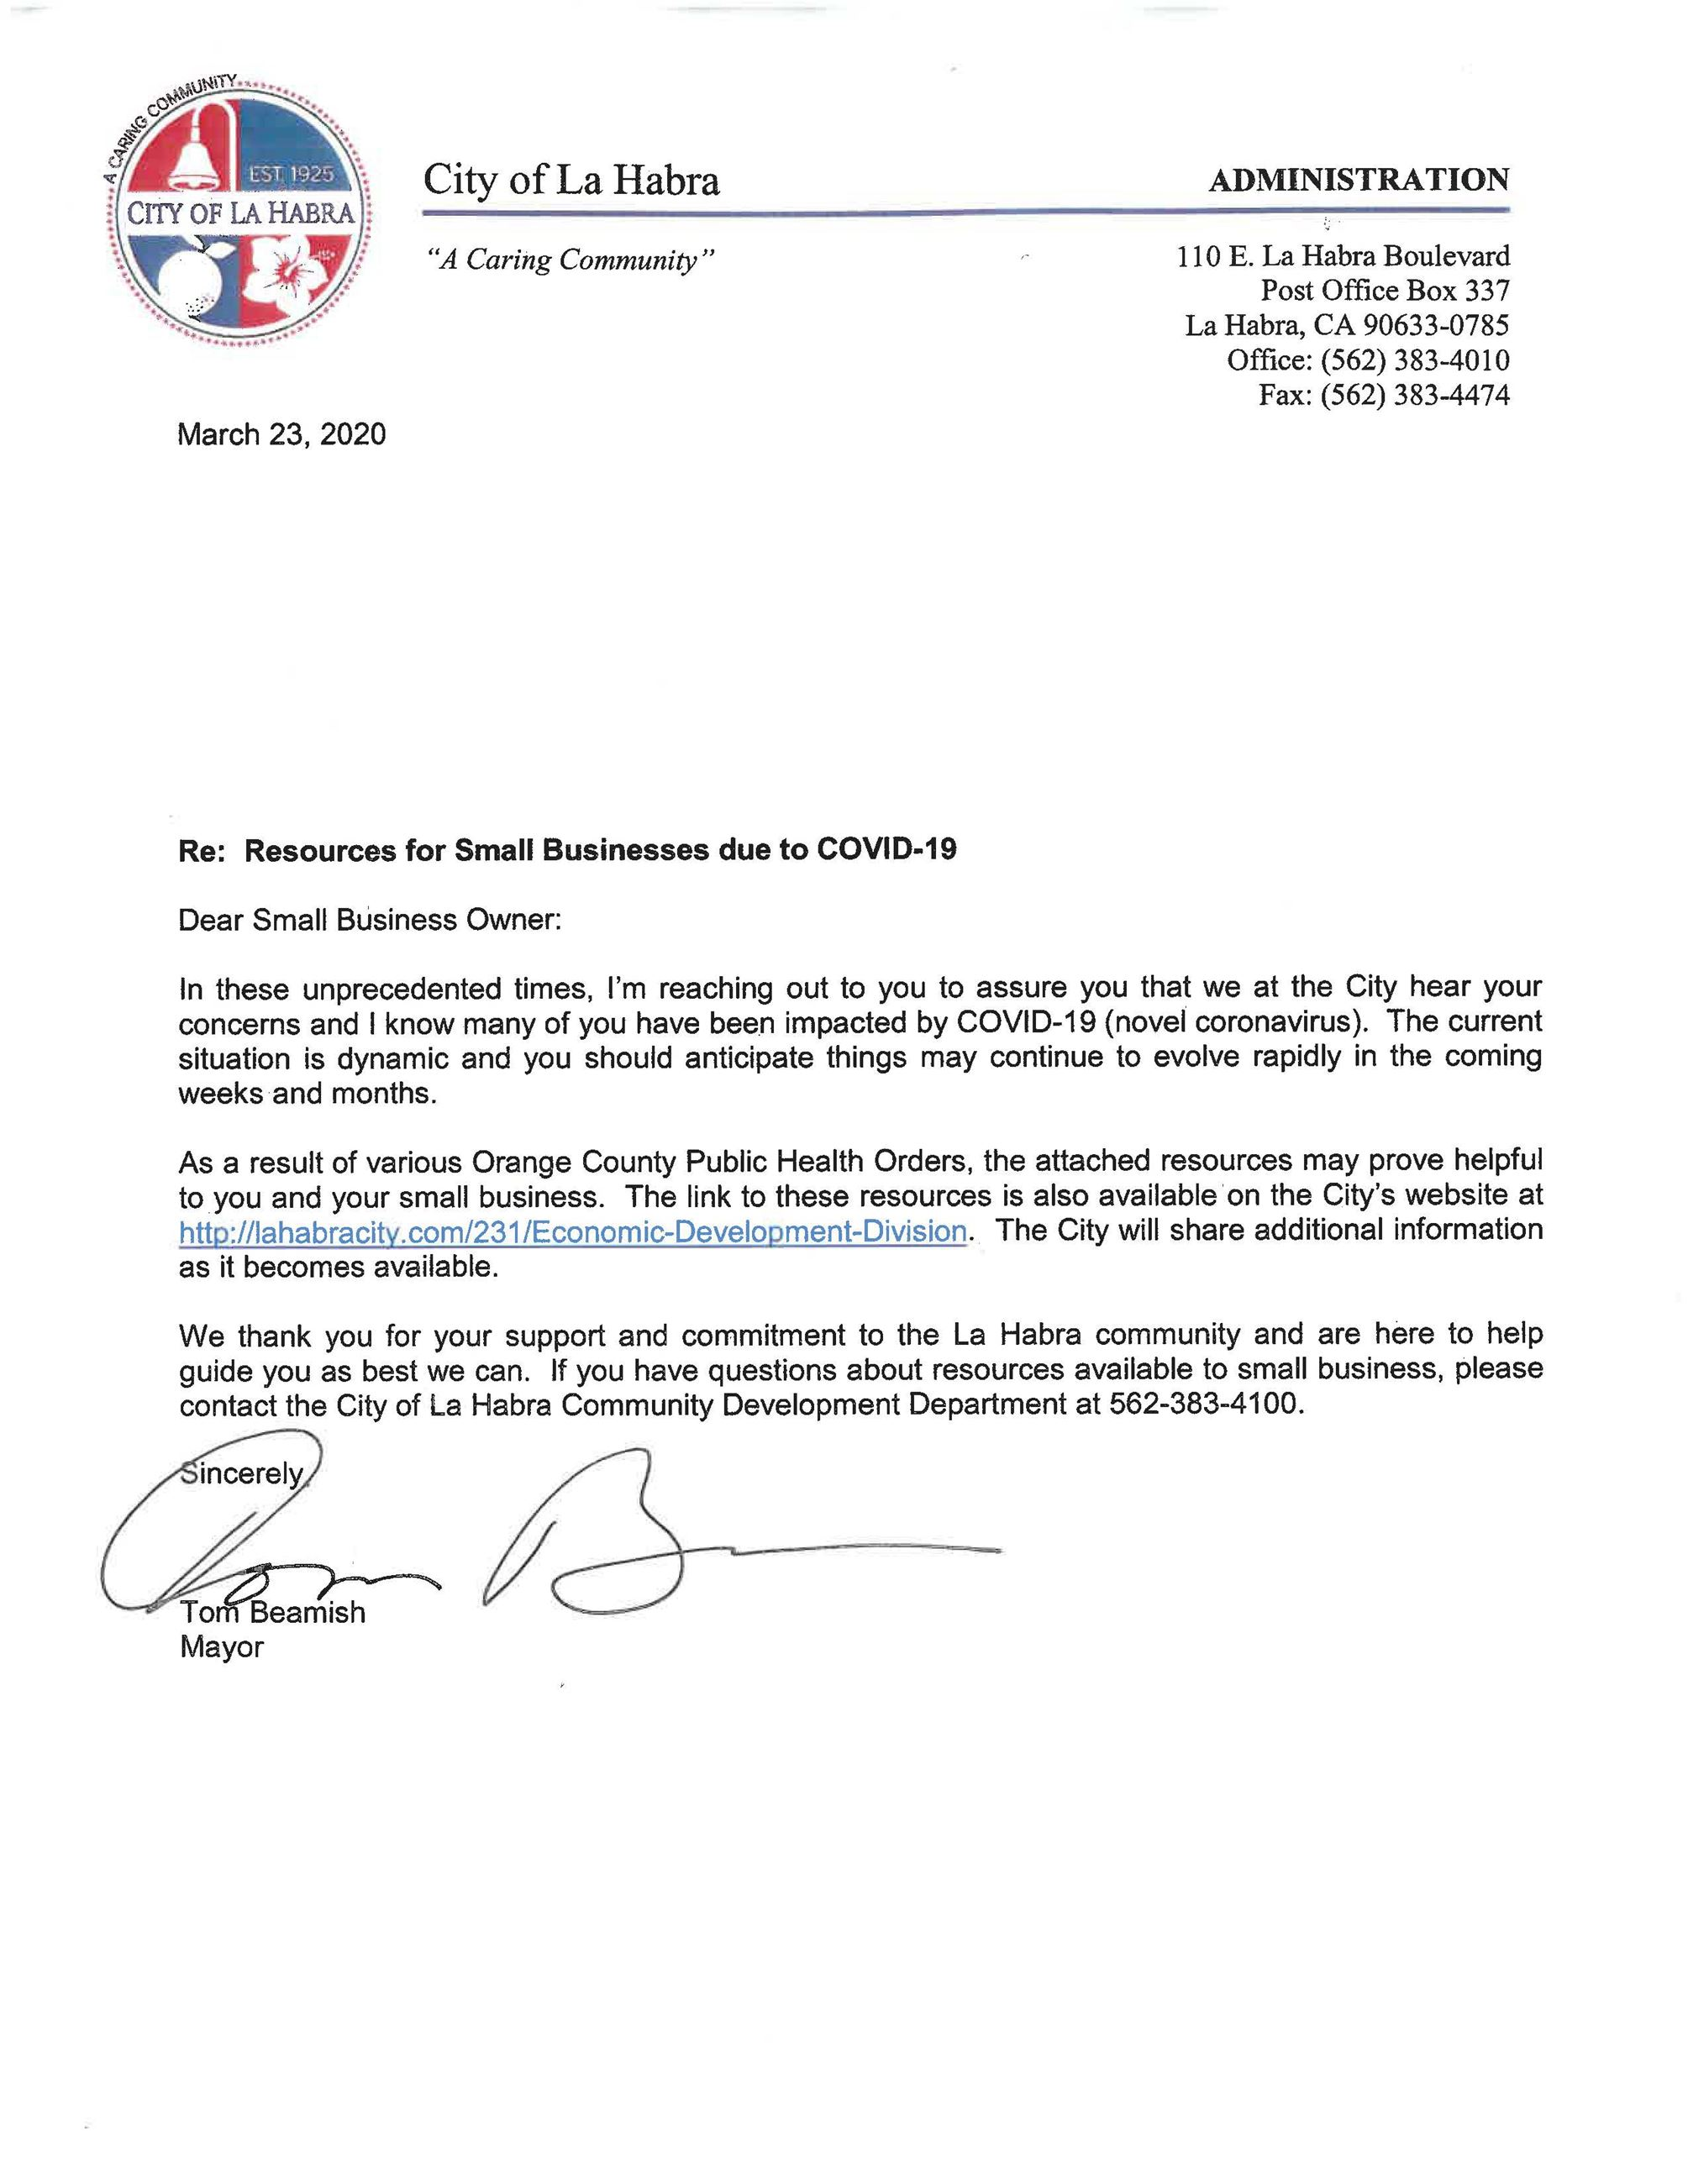 Letter from Mayor Beamish PDF